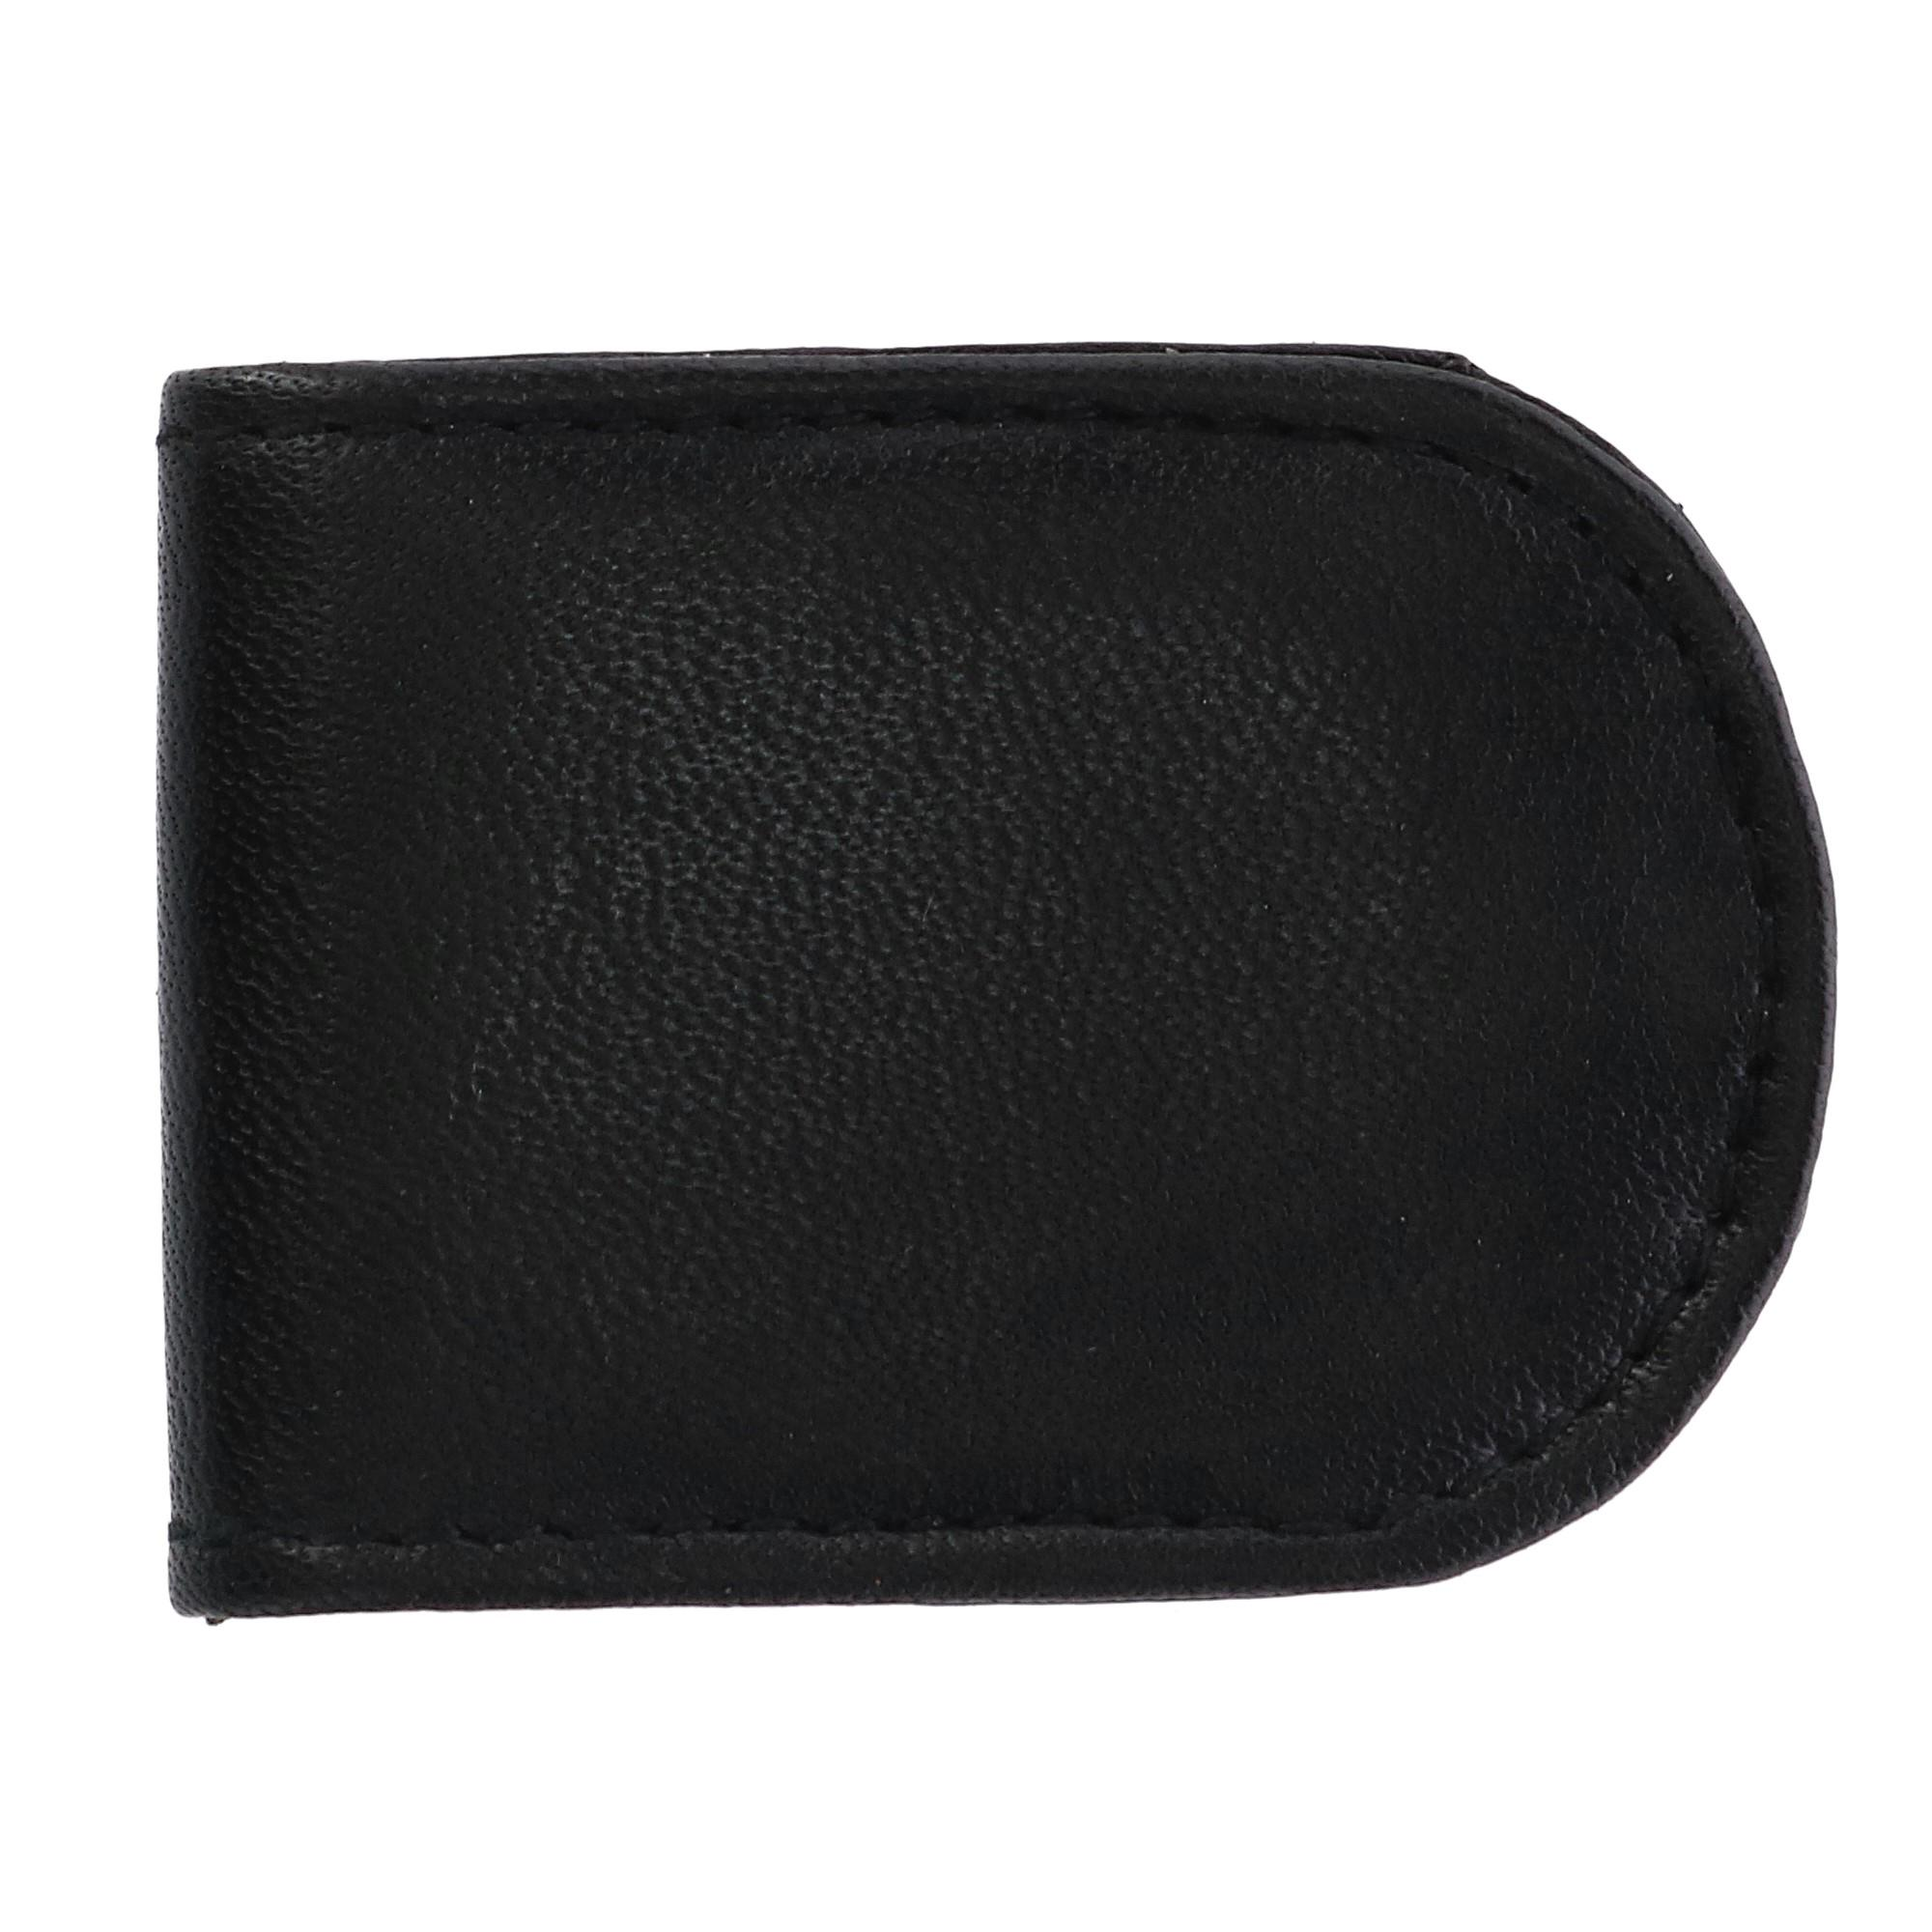 CTM Men's Basic Leather Money Clip